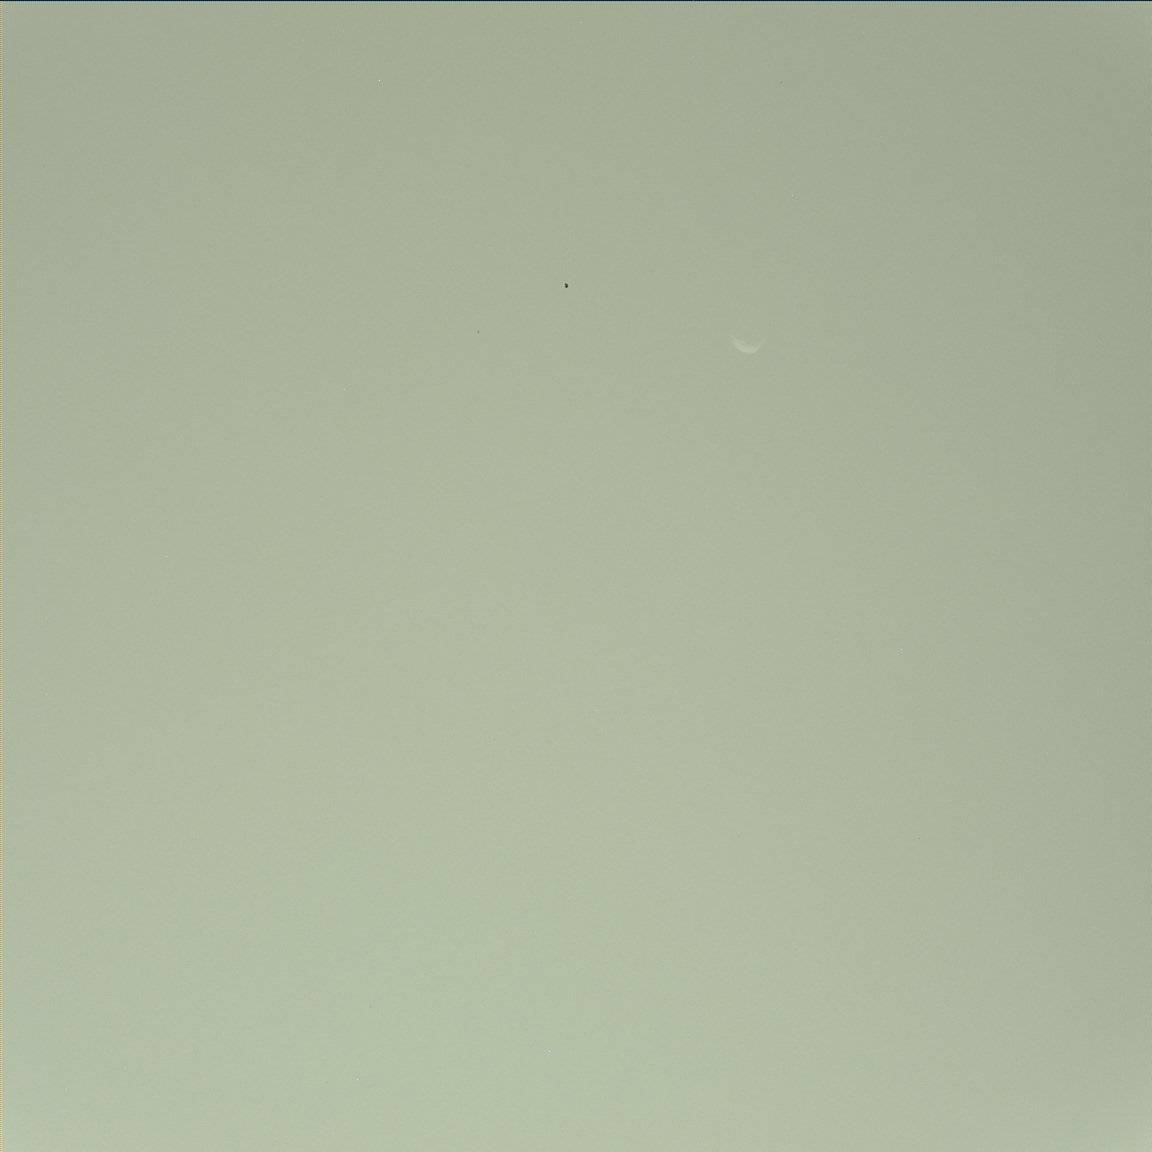 Martian Moon Phobos Seen by Curiosity Rover